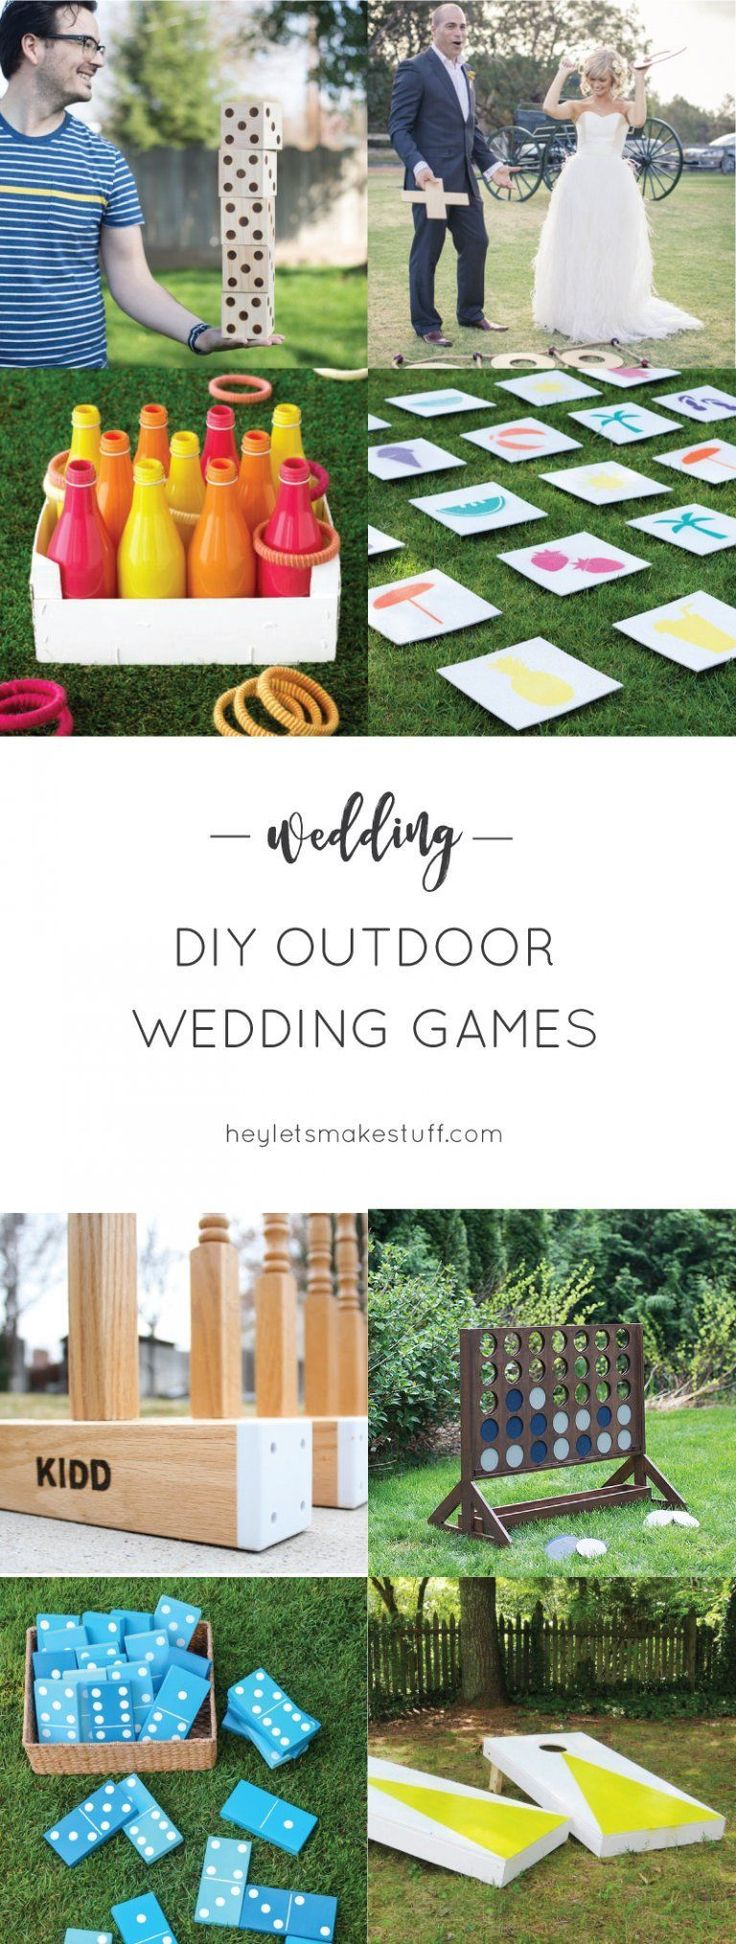 DIY Outdoor Wedding Games If you're having an outdoor wedding, lawn games ar...